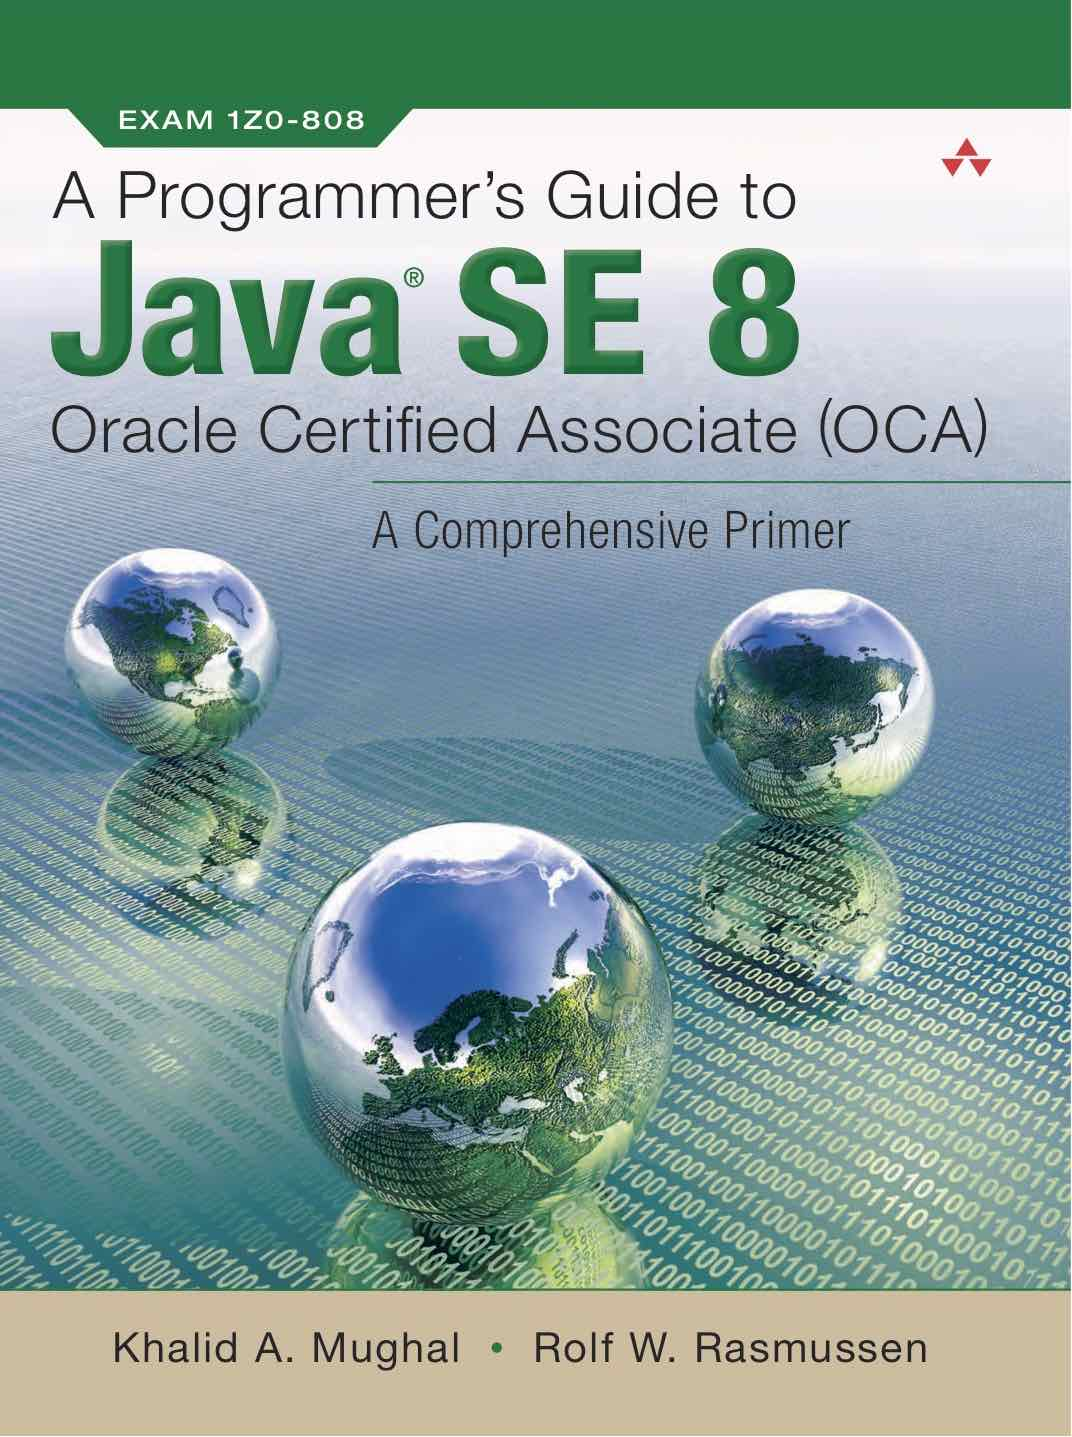 Sample content - A Programmer's Guide to Java SE 8 OCA